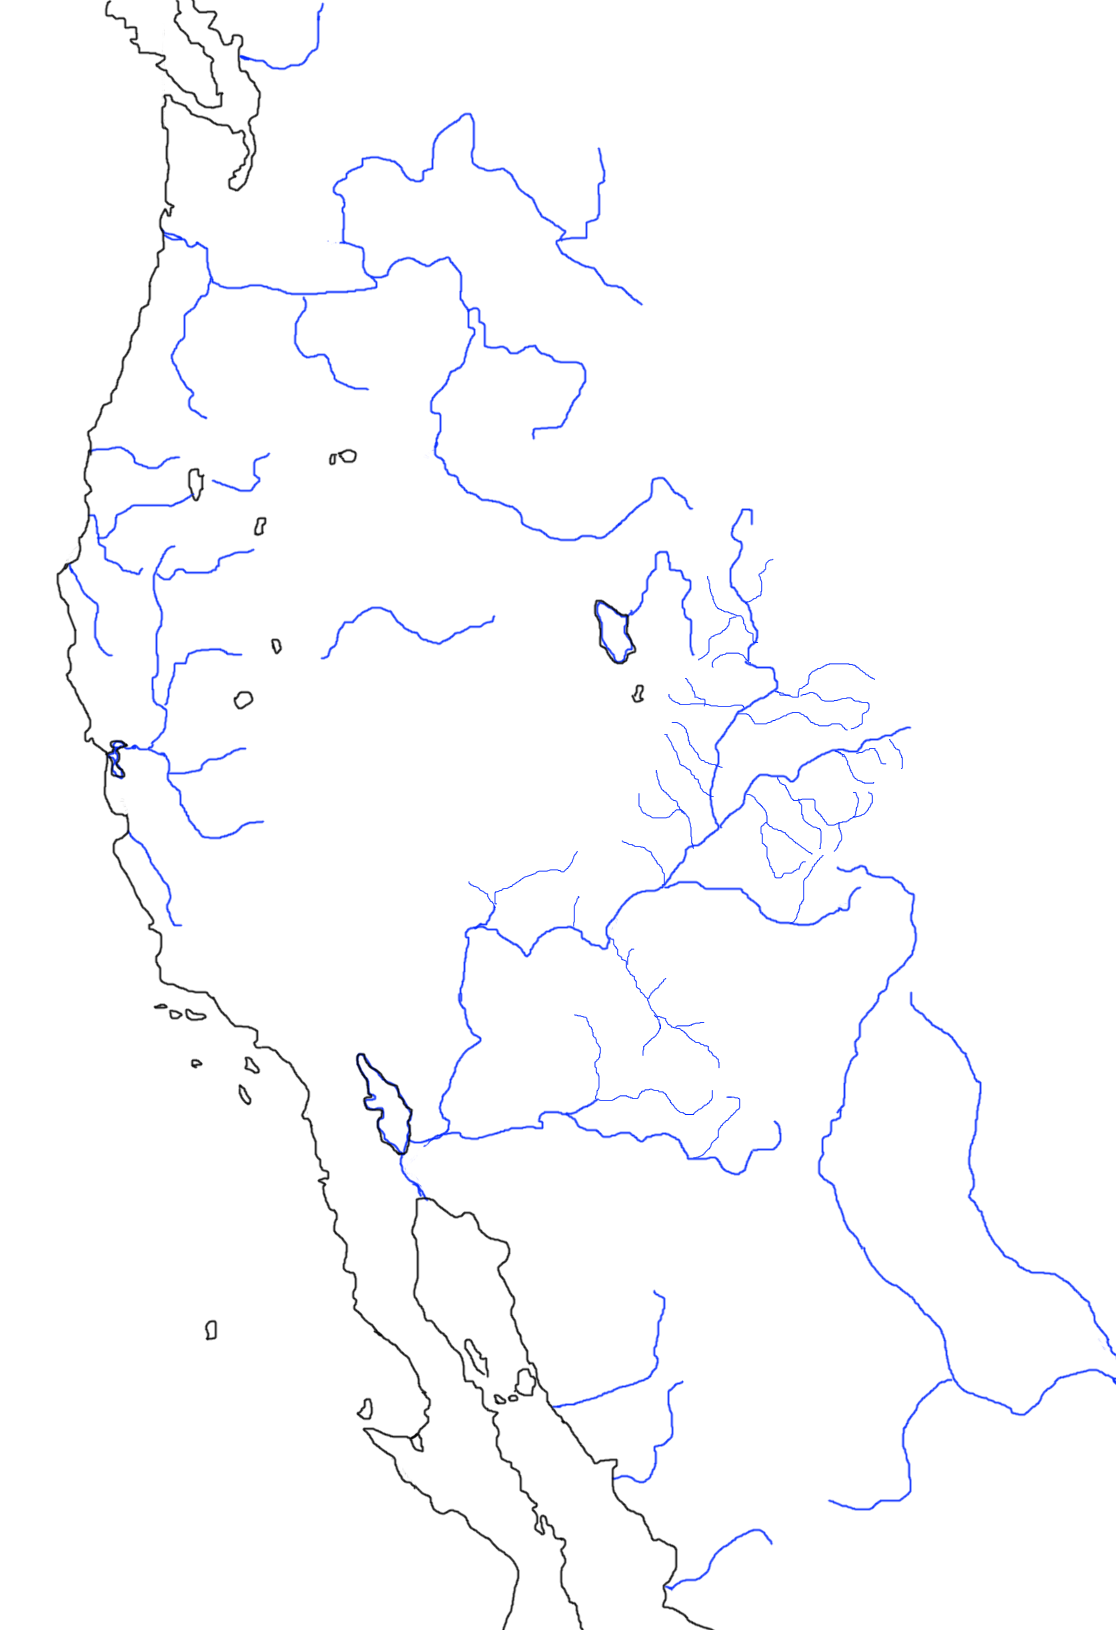 western_temperate_north_america_rivers_only.png